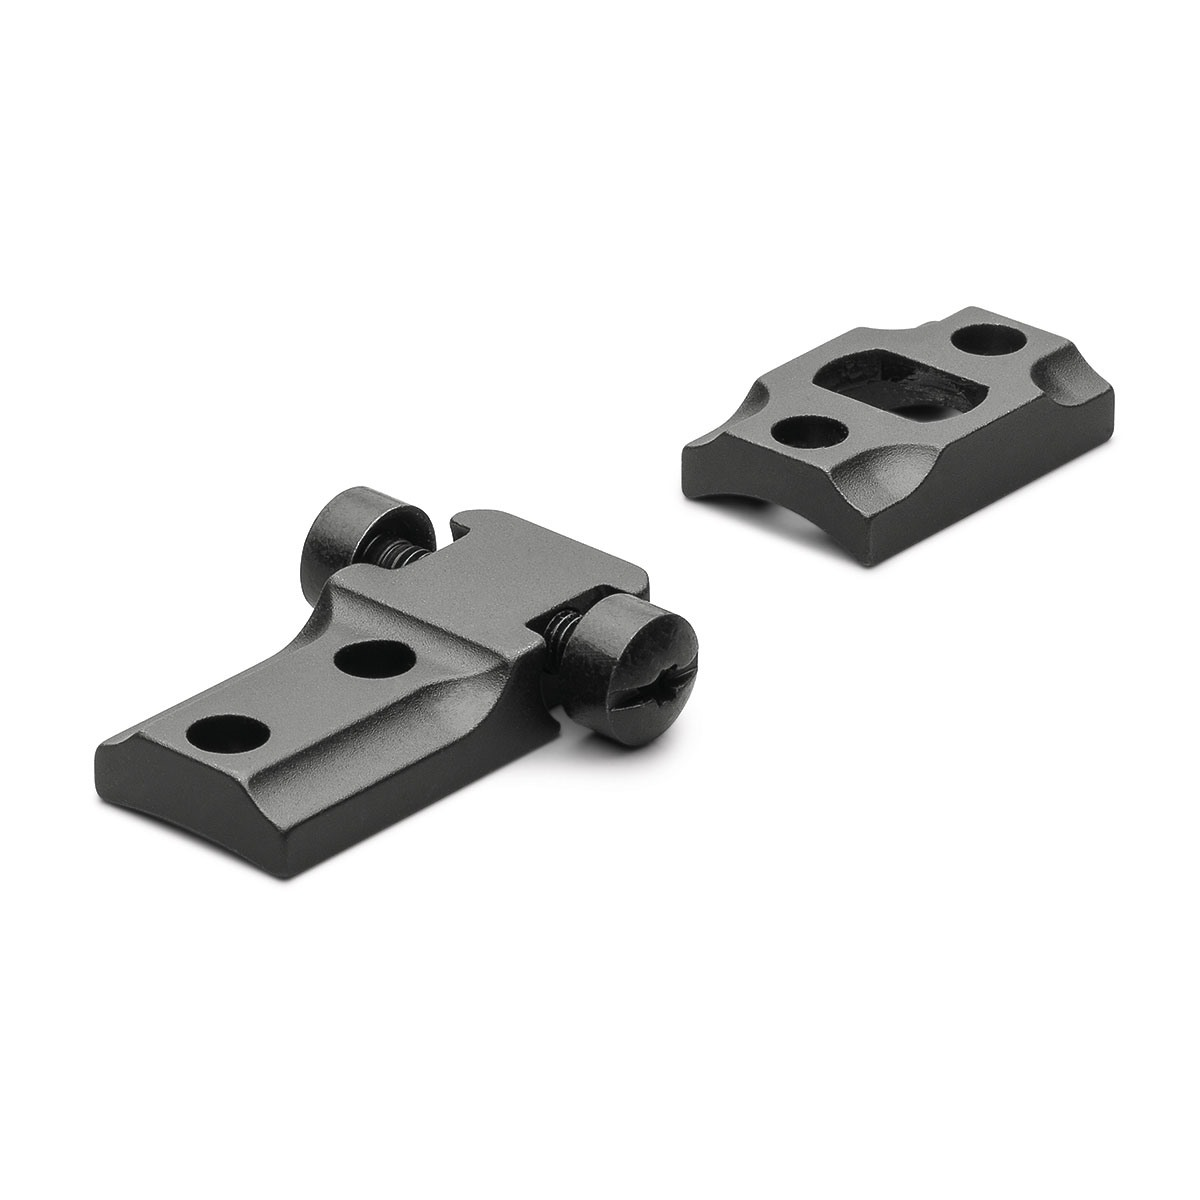 NEW LEUPOLD STD 2-PC BASE Fits Ruger American 2-pc Matte 171903